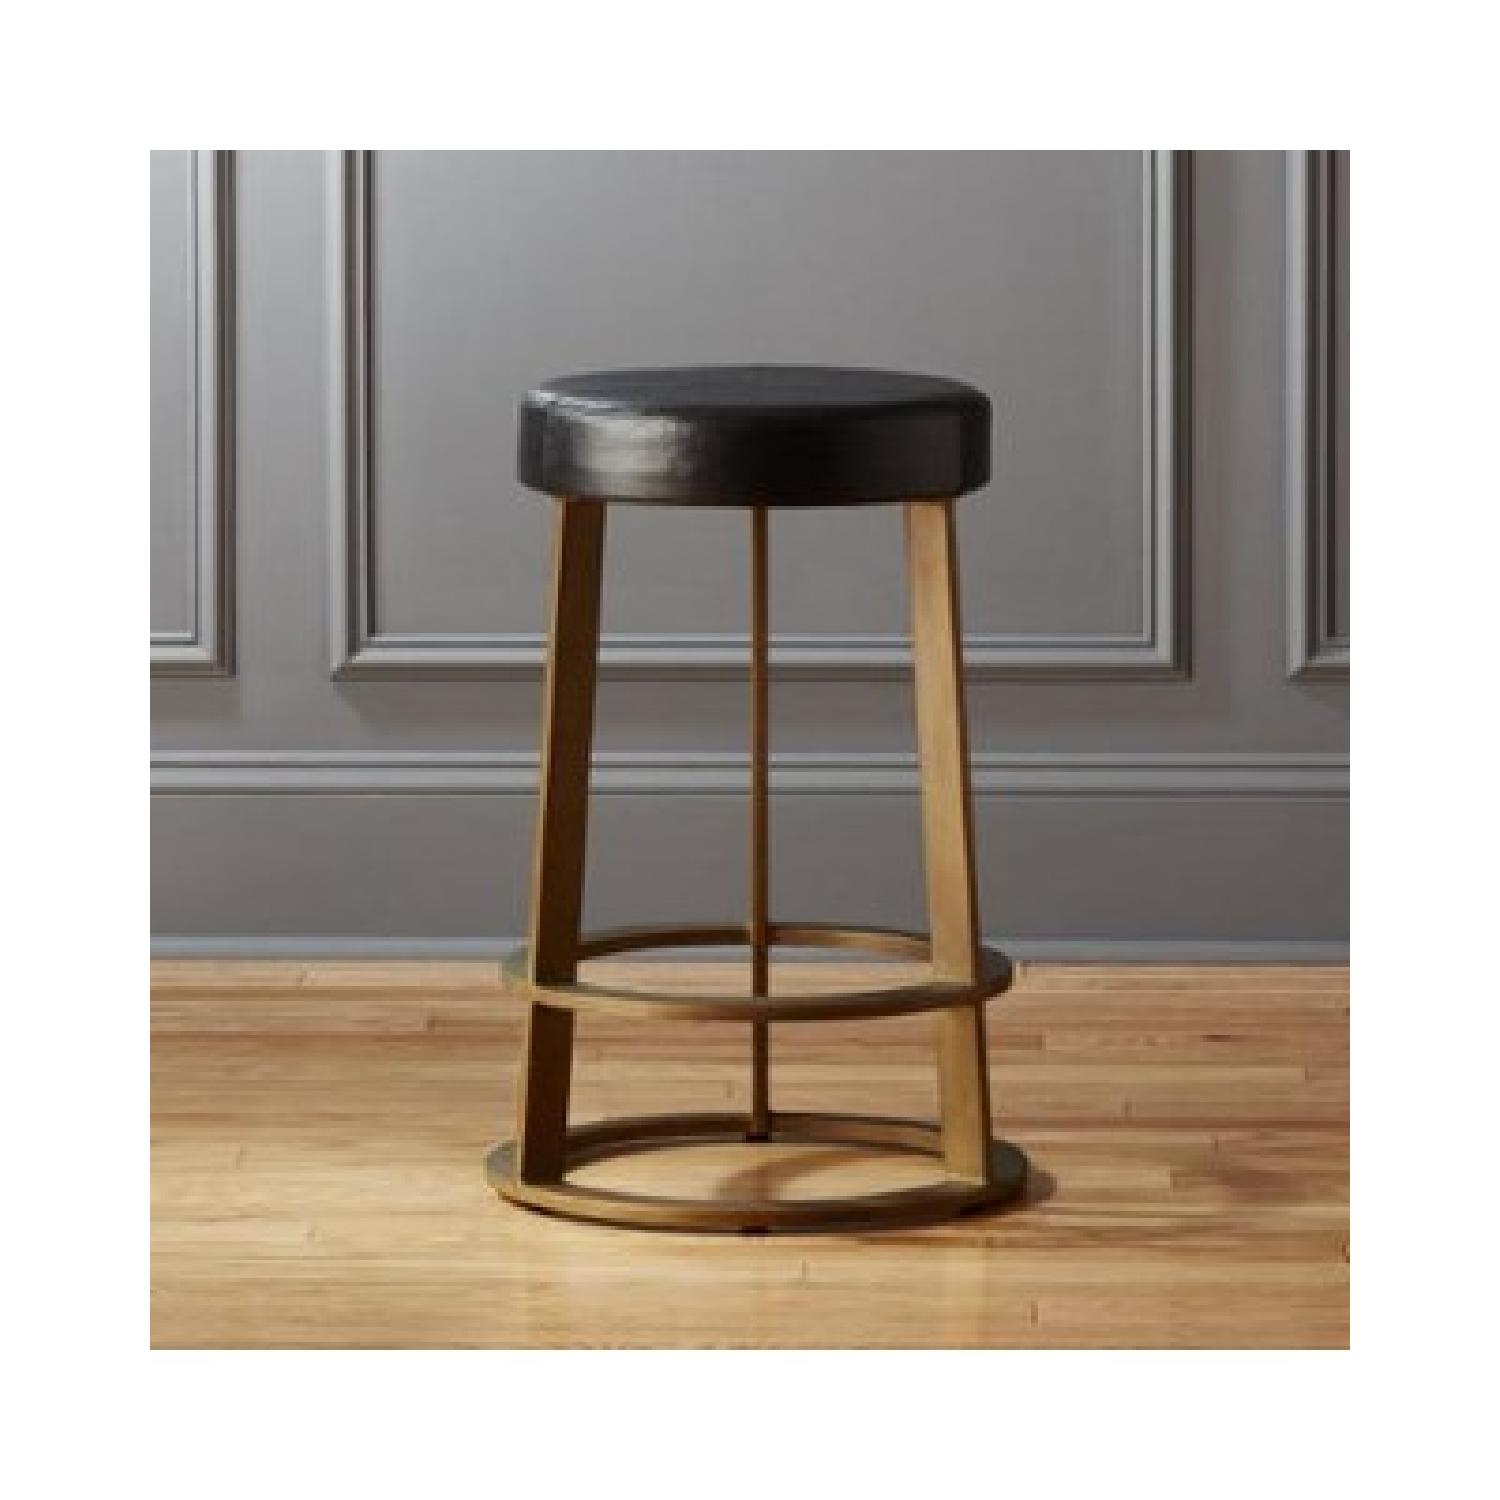 CB2 Leather Reverb Stools - image-1